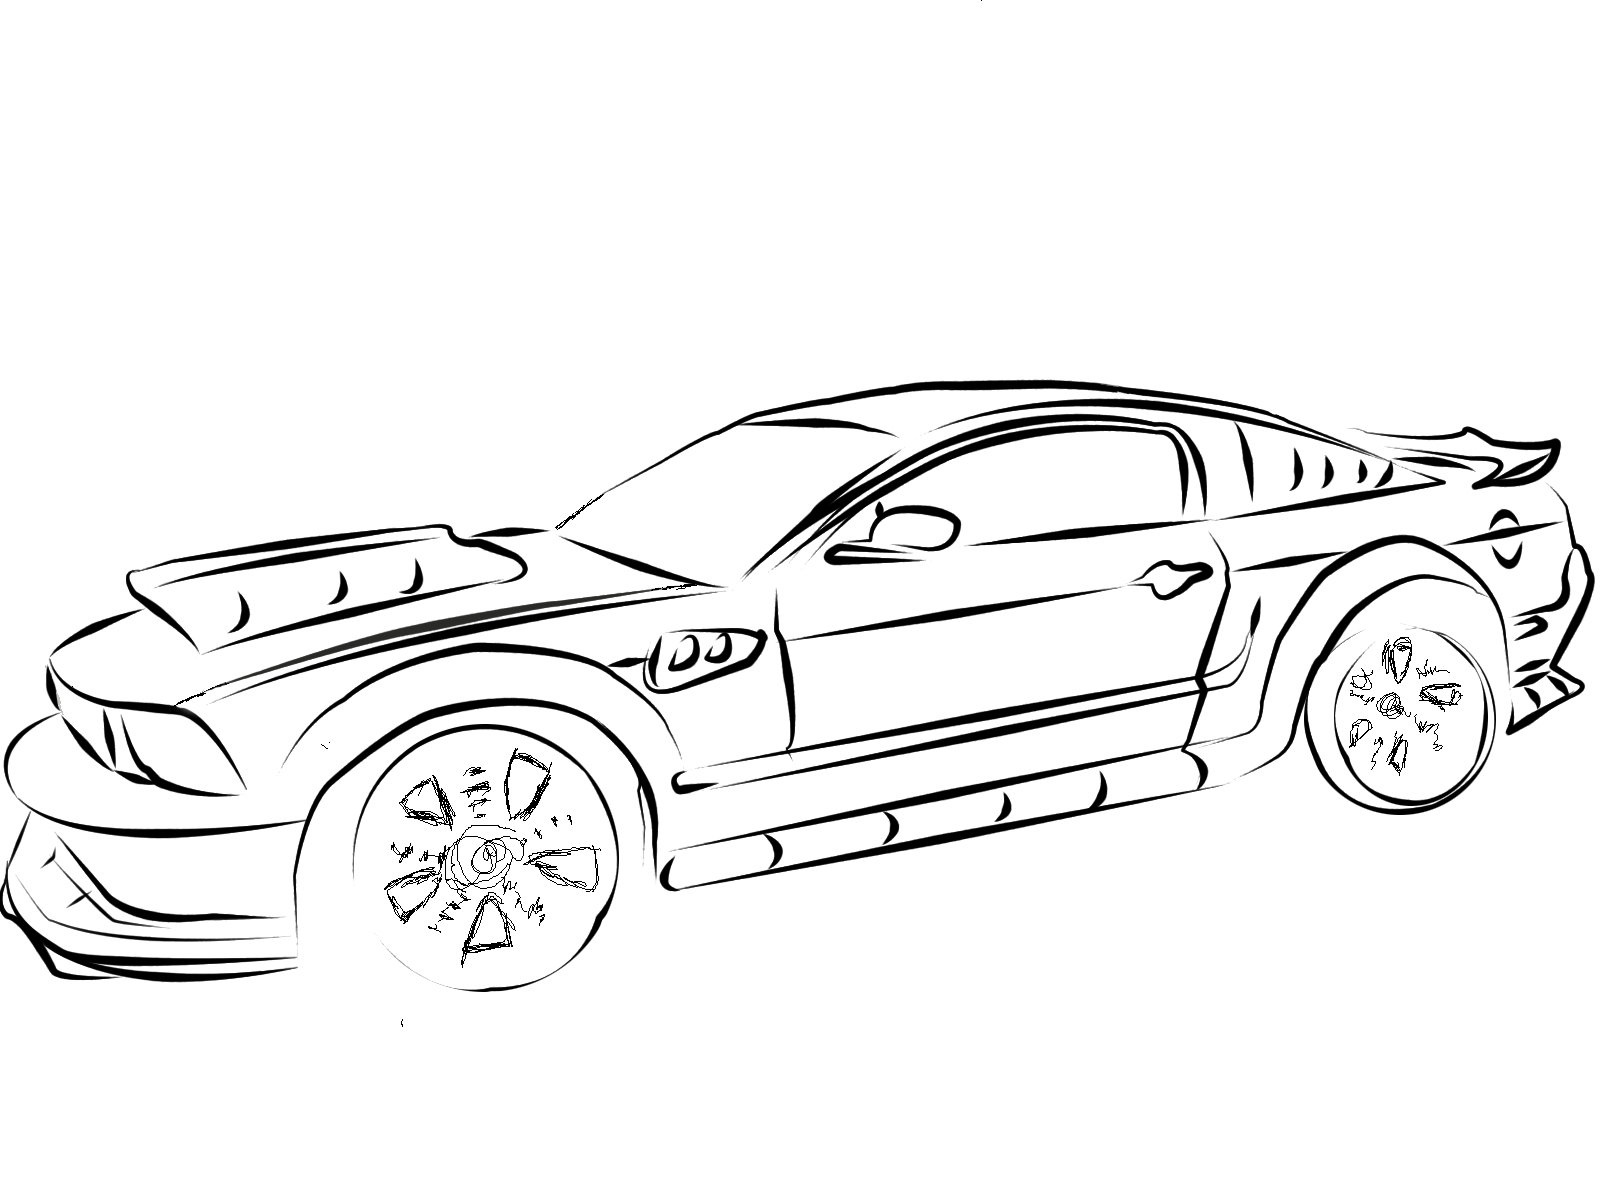 Mustang Gt Drawing At Getdrawings